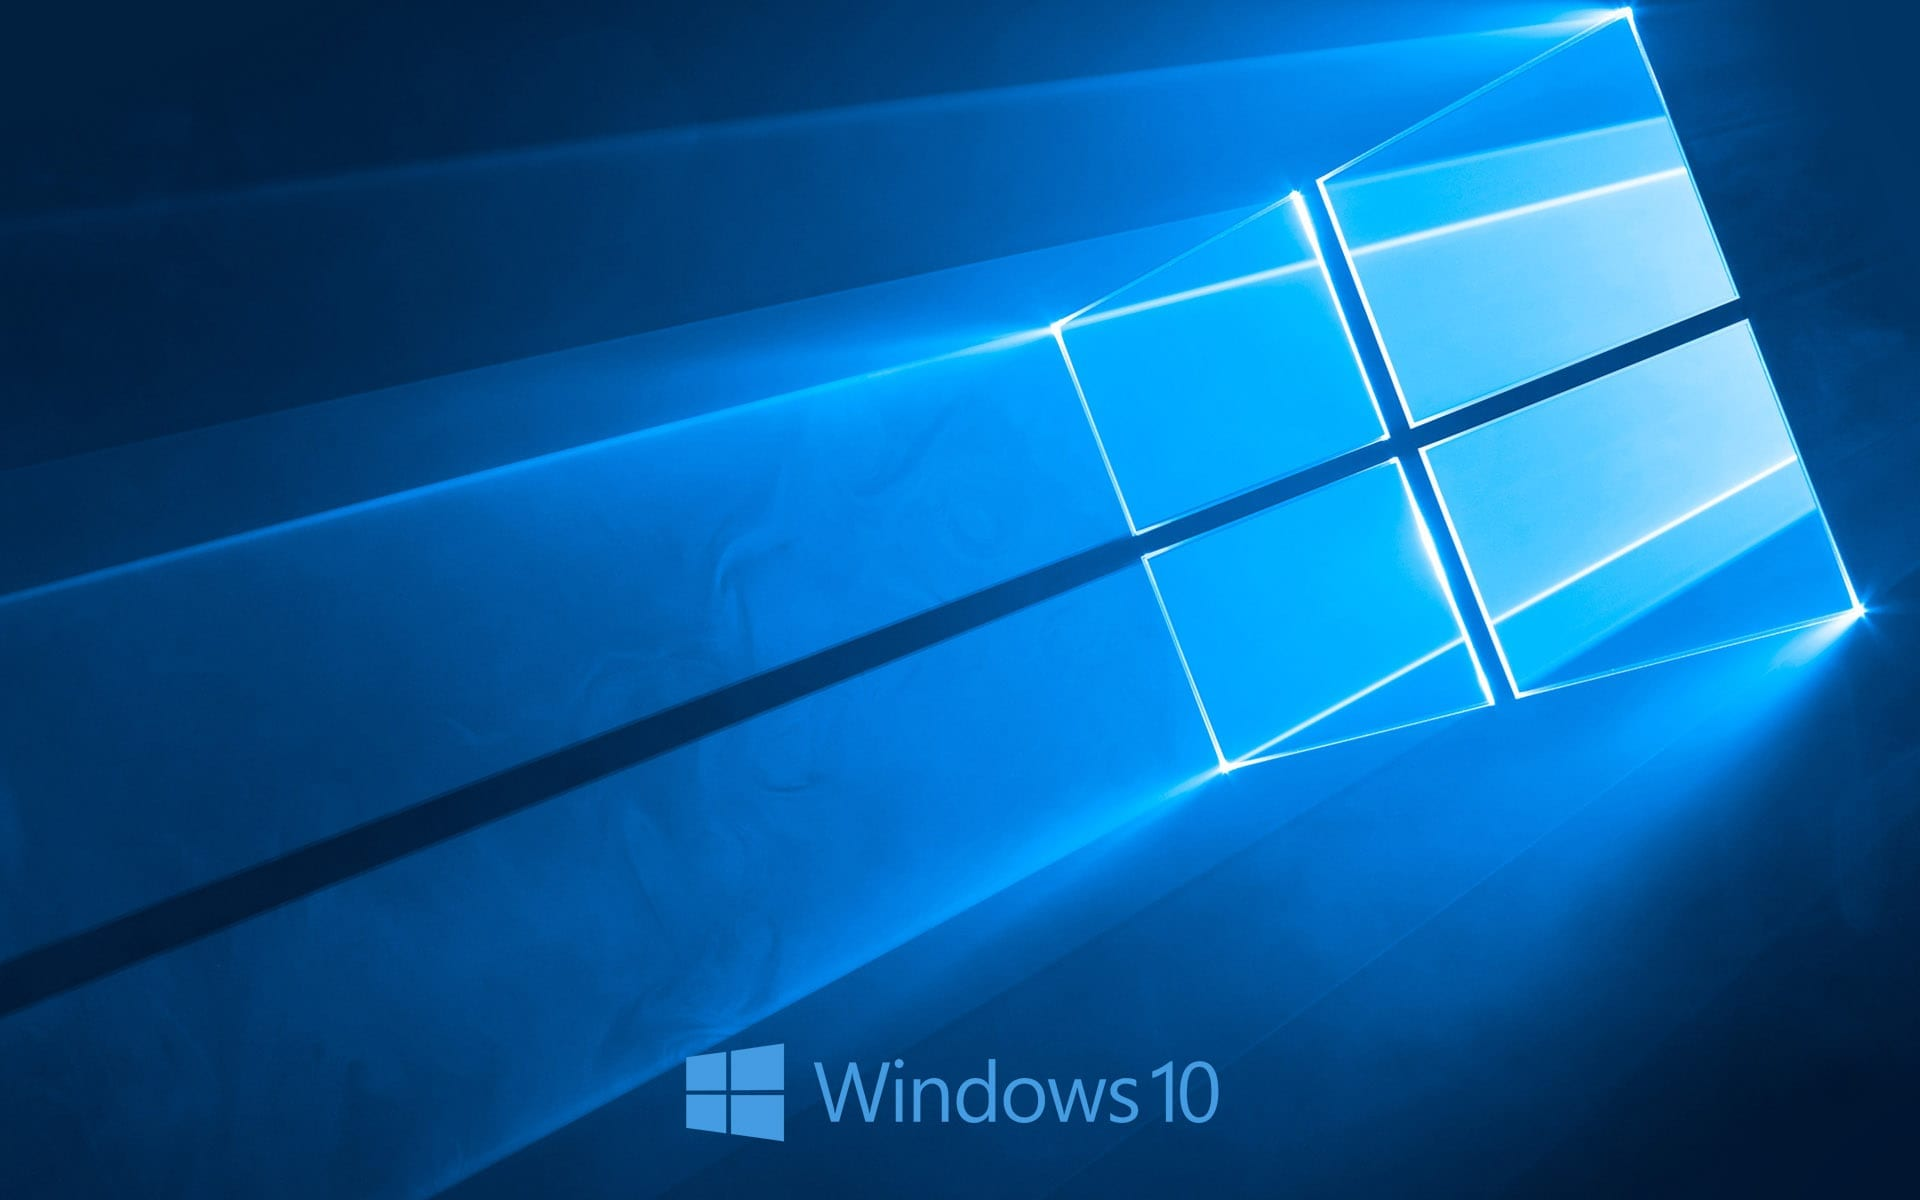 Windows 10 Upgrades: Not Your Normal Monthly Updates